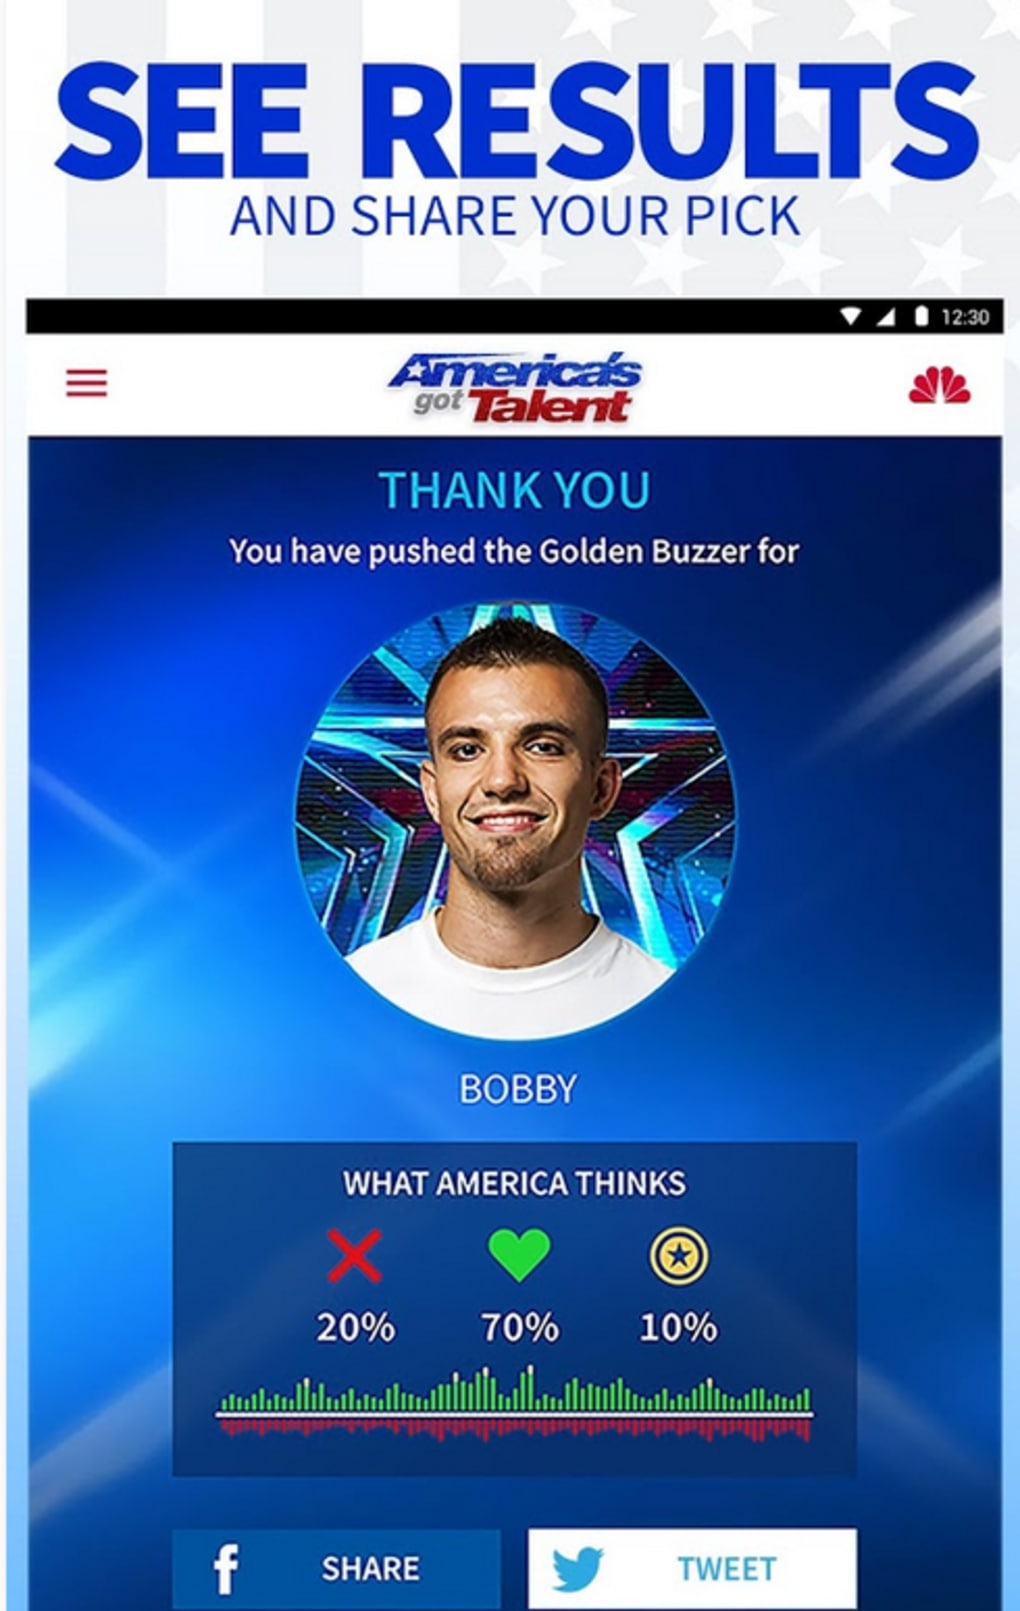 AGT: America's Got Talent for Android - Download